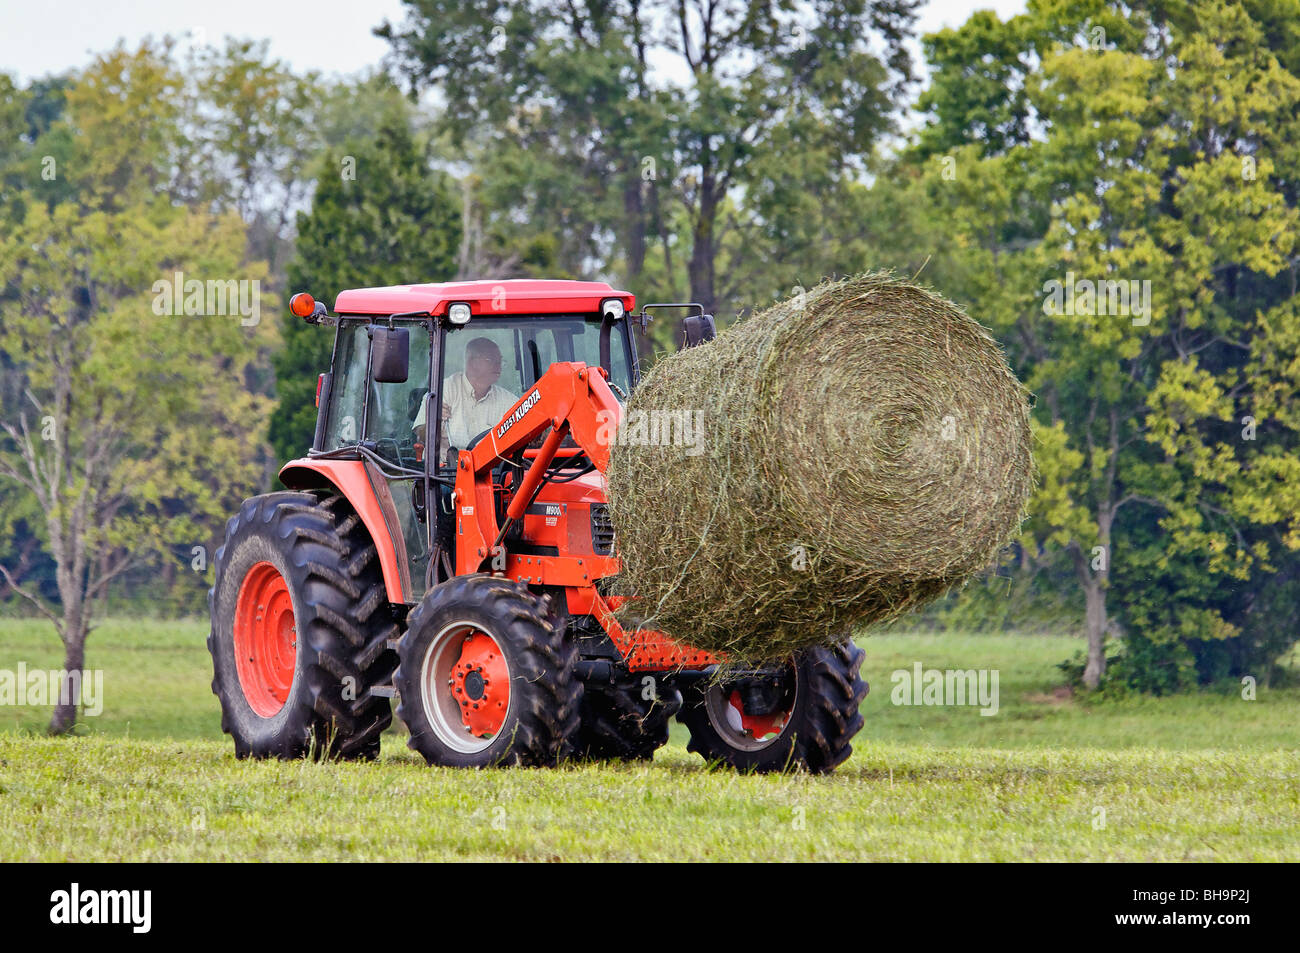 Kubota tractors for sale in kentucky - Man Moving Round Hay Bale With Kubota M9000 Tractor With La1251 Loader On Farm In Oldham County Kentucky